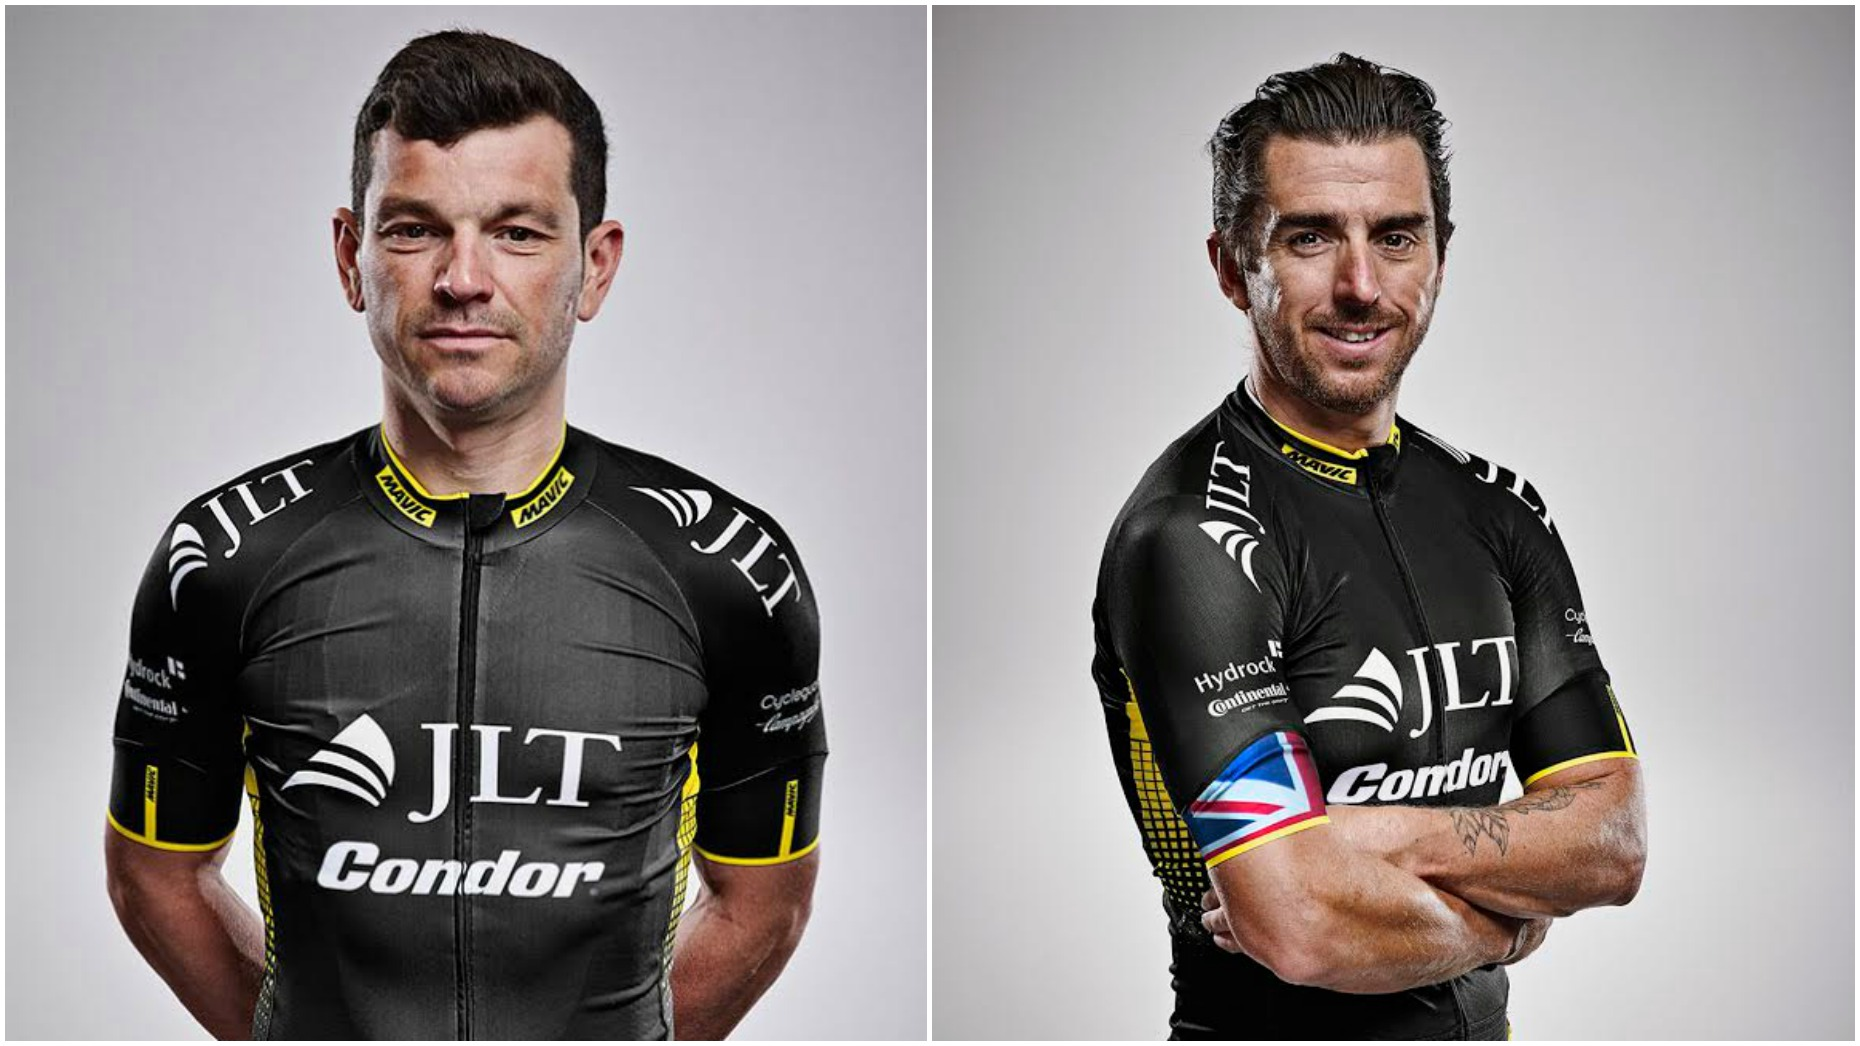 Pros Graham Briggs (left) and Russell Downing will be at the cycling event.